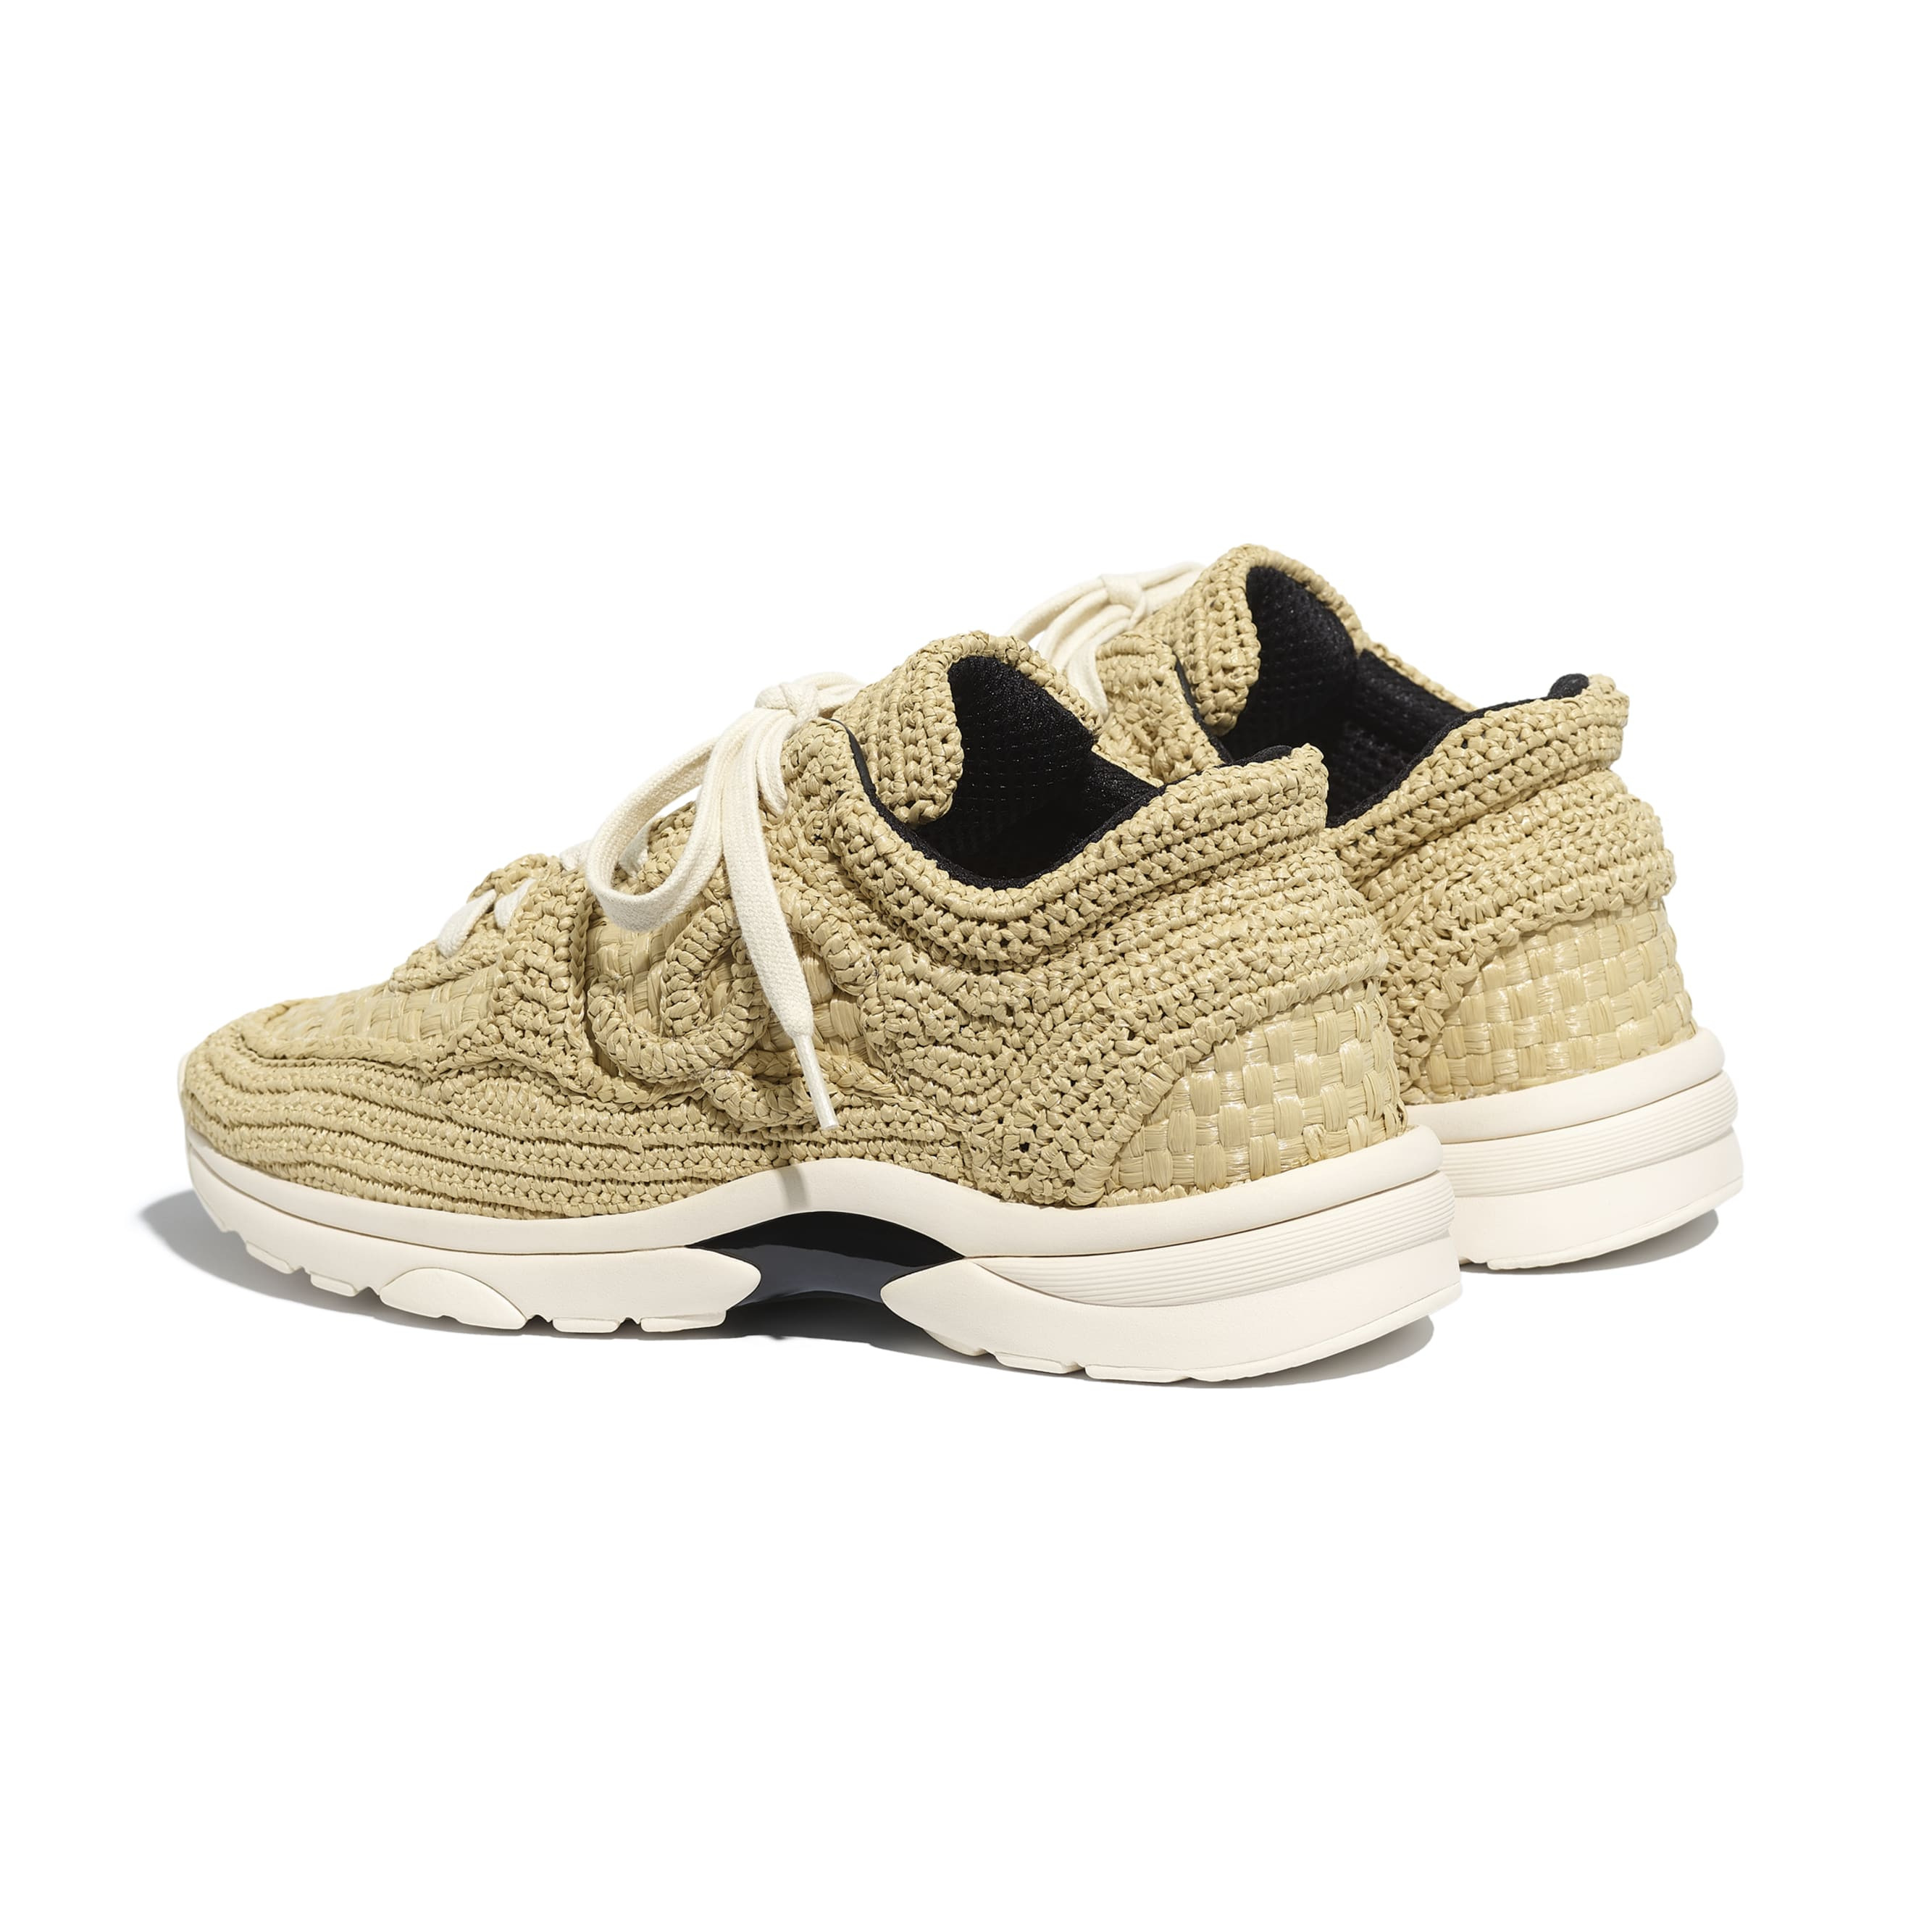 Trainers - Beige - Braided Raffia - CHANEL - Other view - see standard sized version